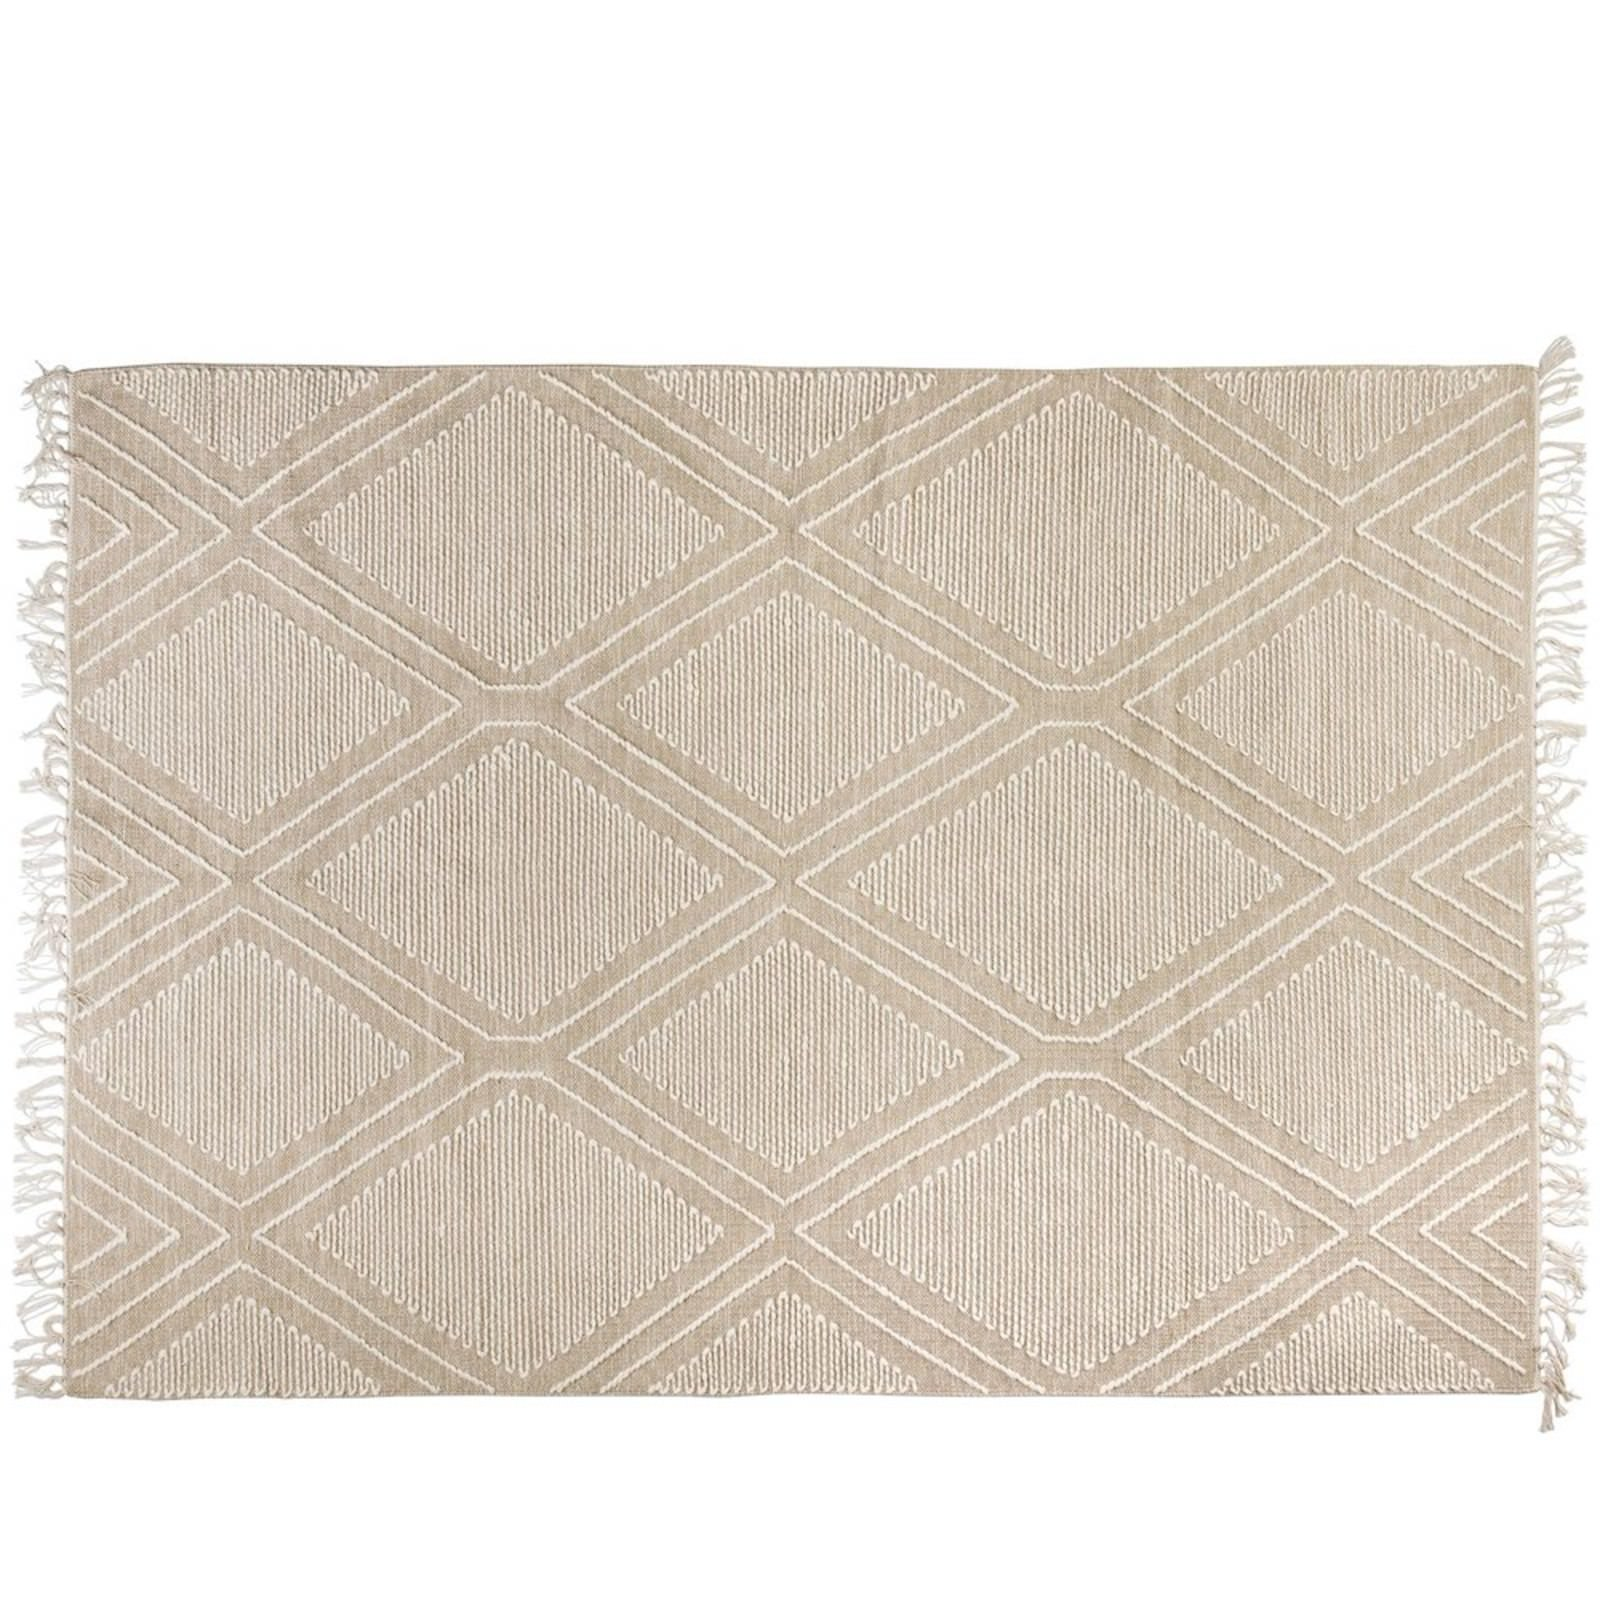 NORELL TAPIS 160X230CM